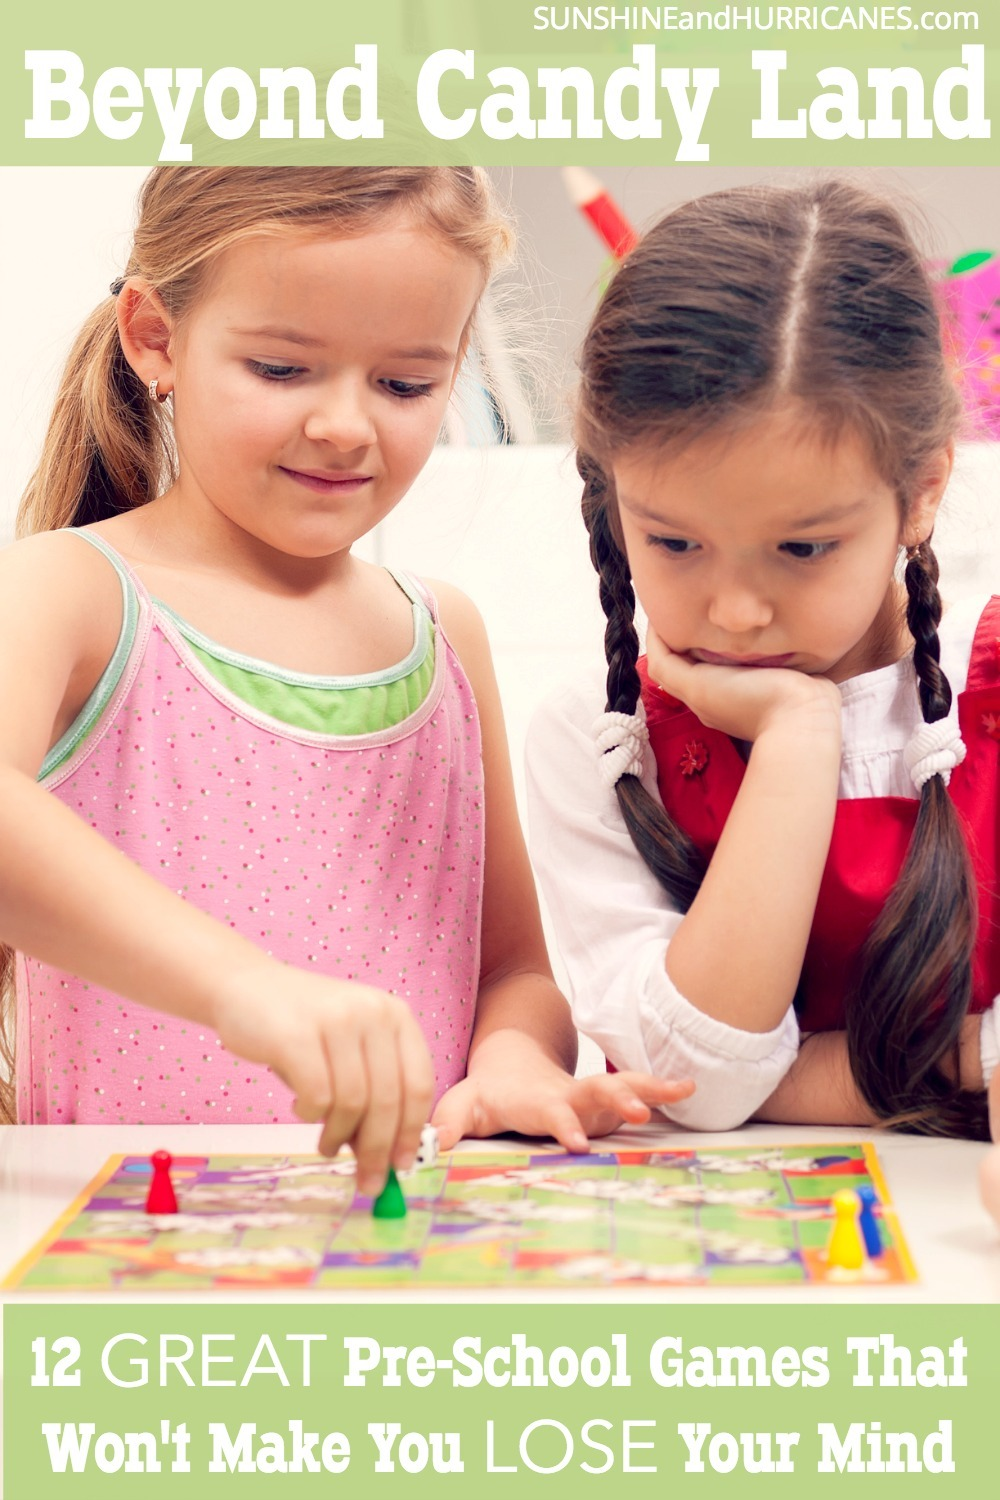 Do you feel like if you have to play one more game of candy land or chutes and ladders you might lose your mind? You are not alone. Luckily, times have changed and so have our choices for preschool games. There are tons of new board games for younger kids that are not only fun, but even educational. Here are our 12 top picks for preschool games.